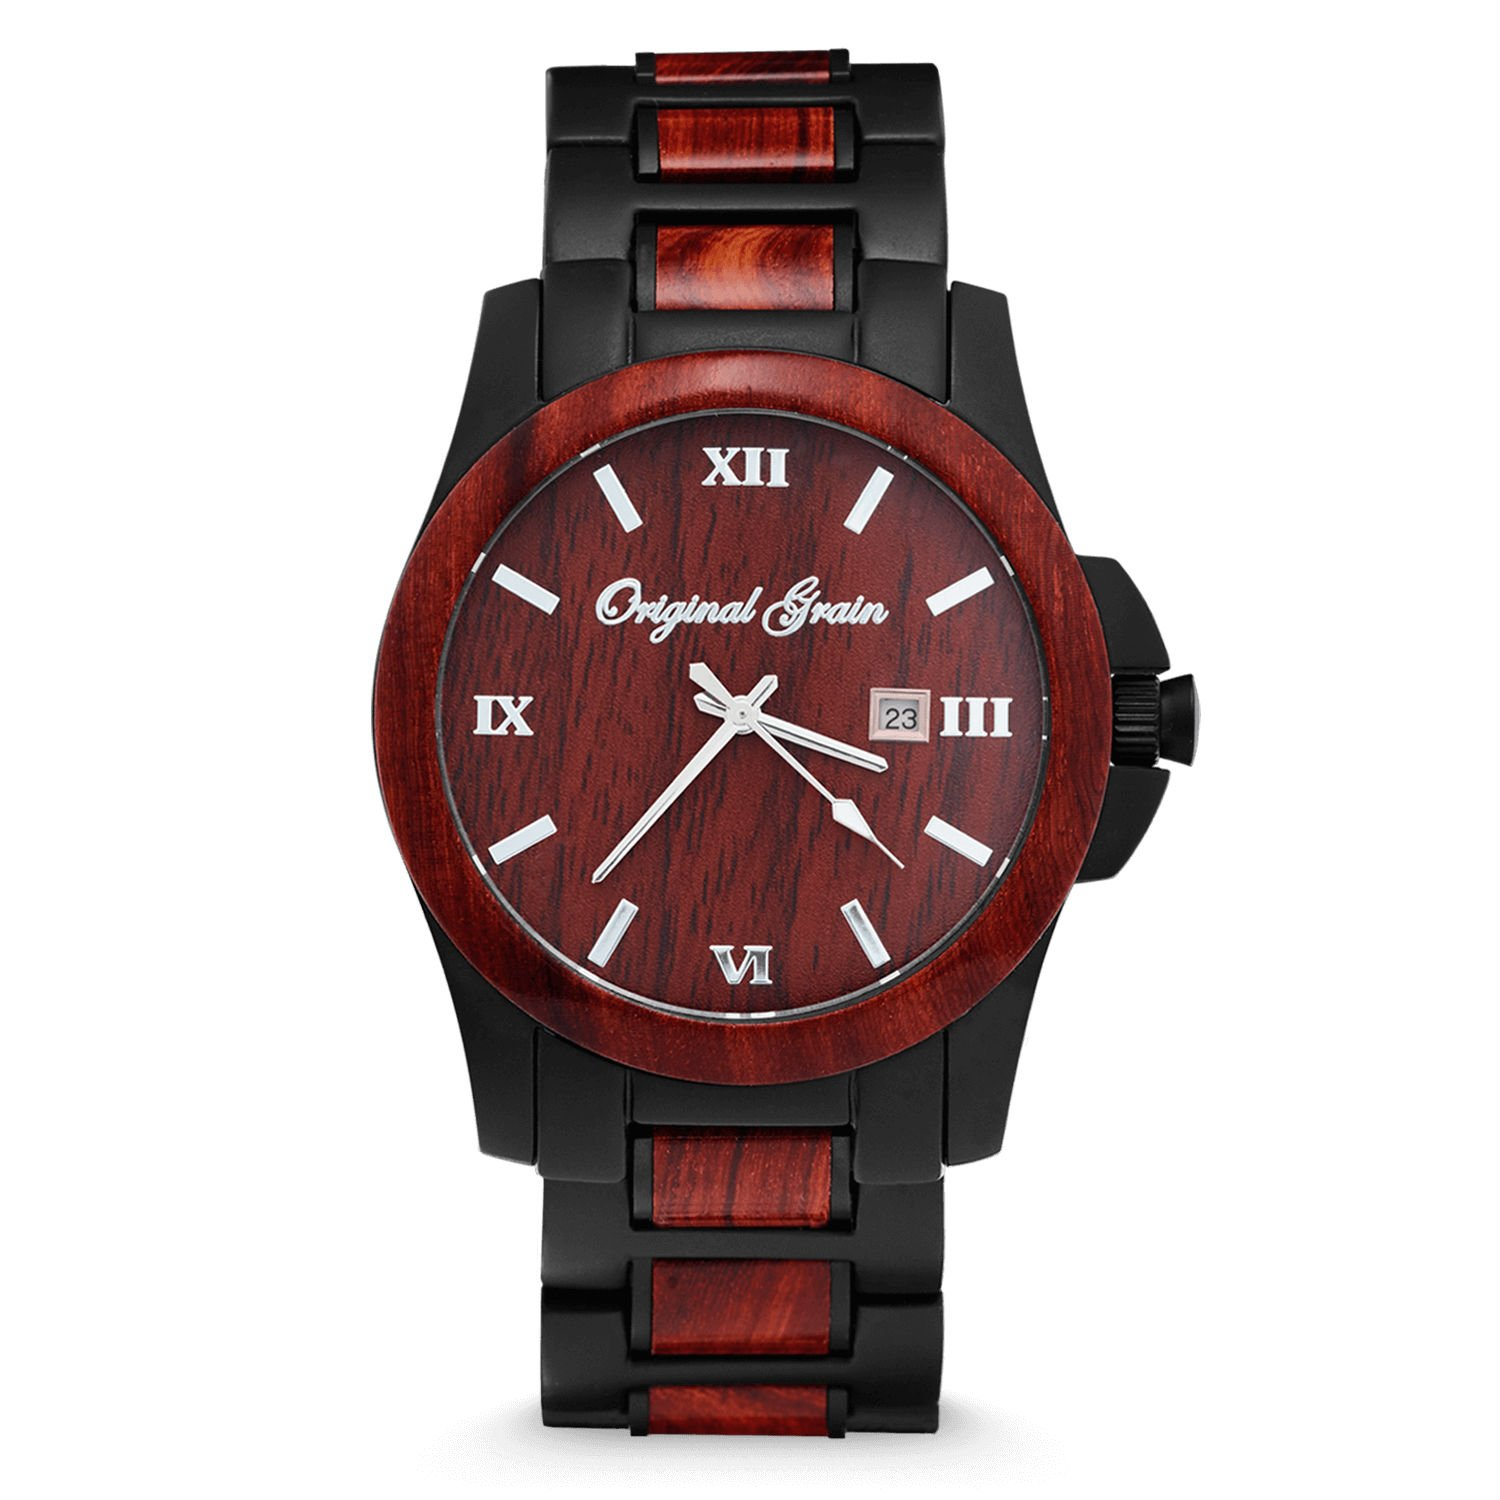 Original Grain Wood Wrist Watch | Classic Collection 43MM Analog Watch | Wood And Matte Black Stainless Steel Watch Band | Japanese Quartz Movement | Rosewood